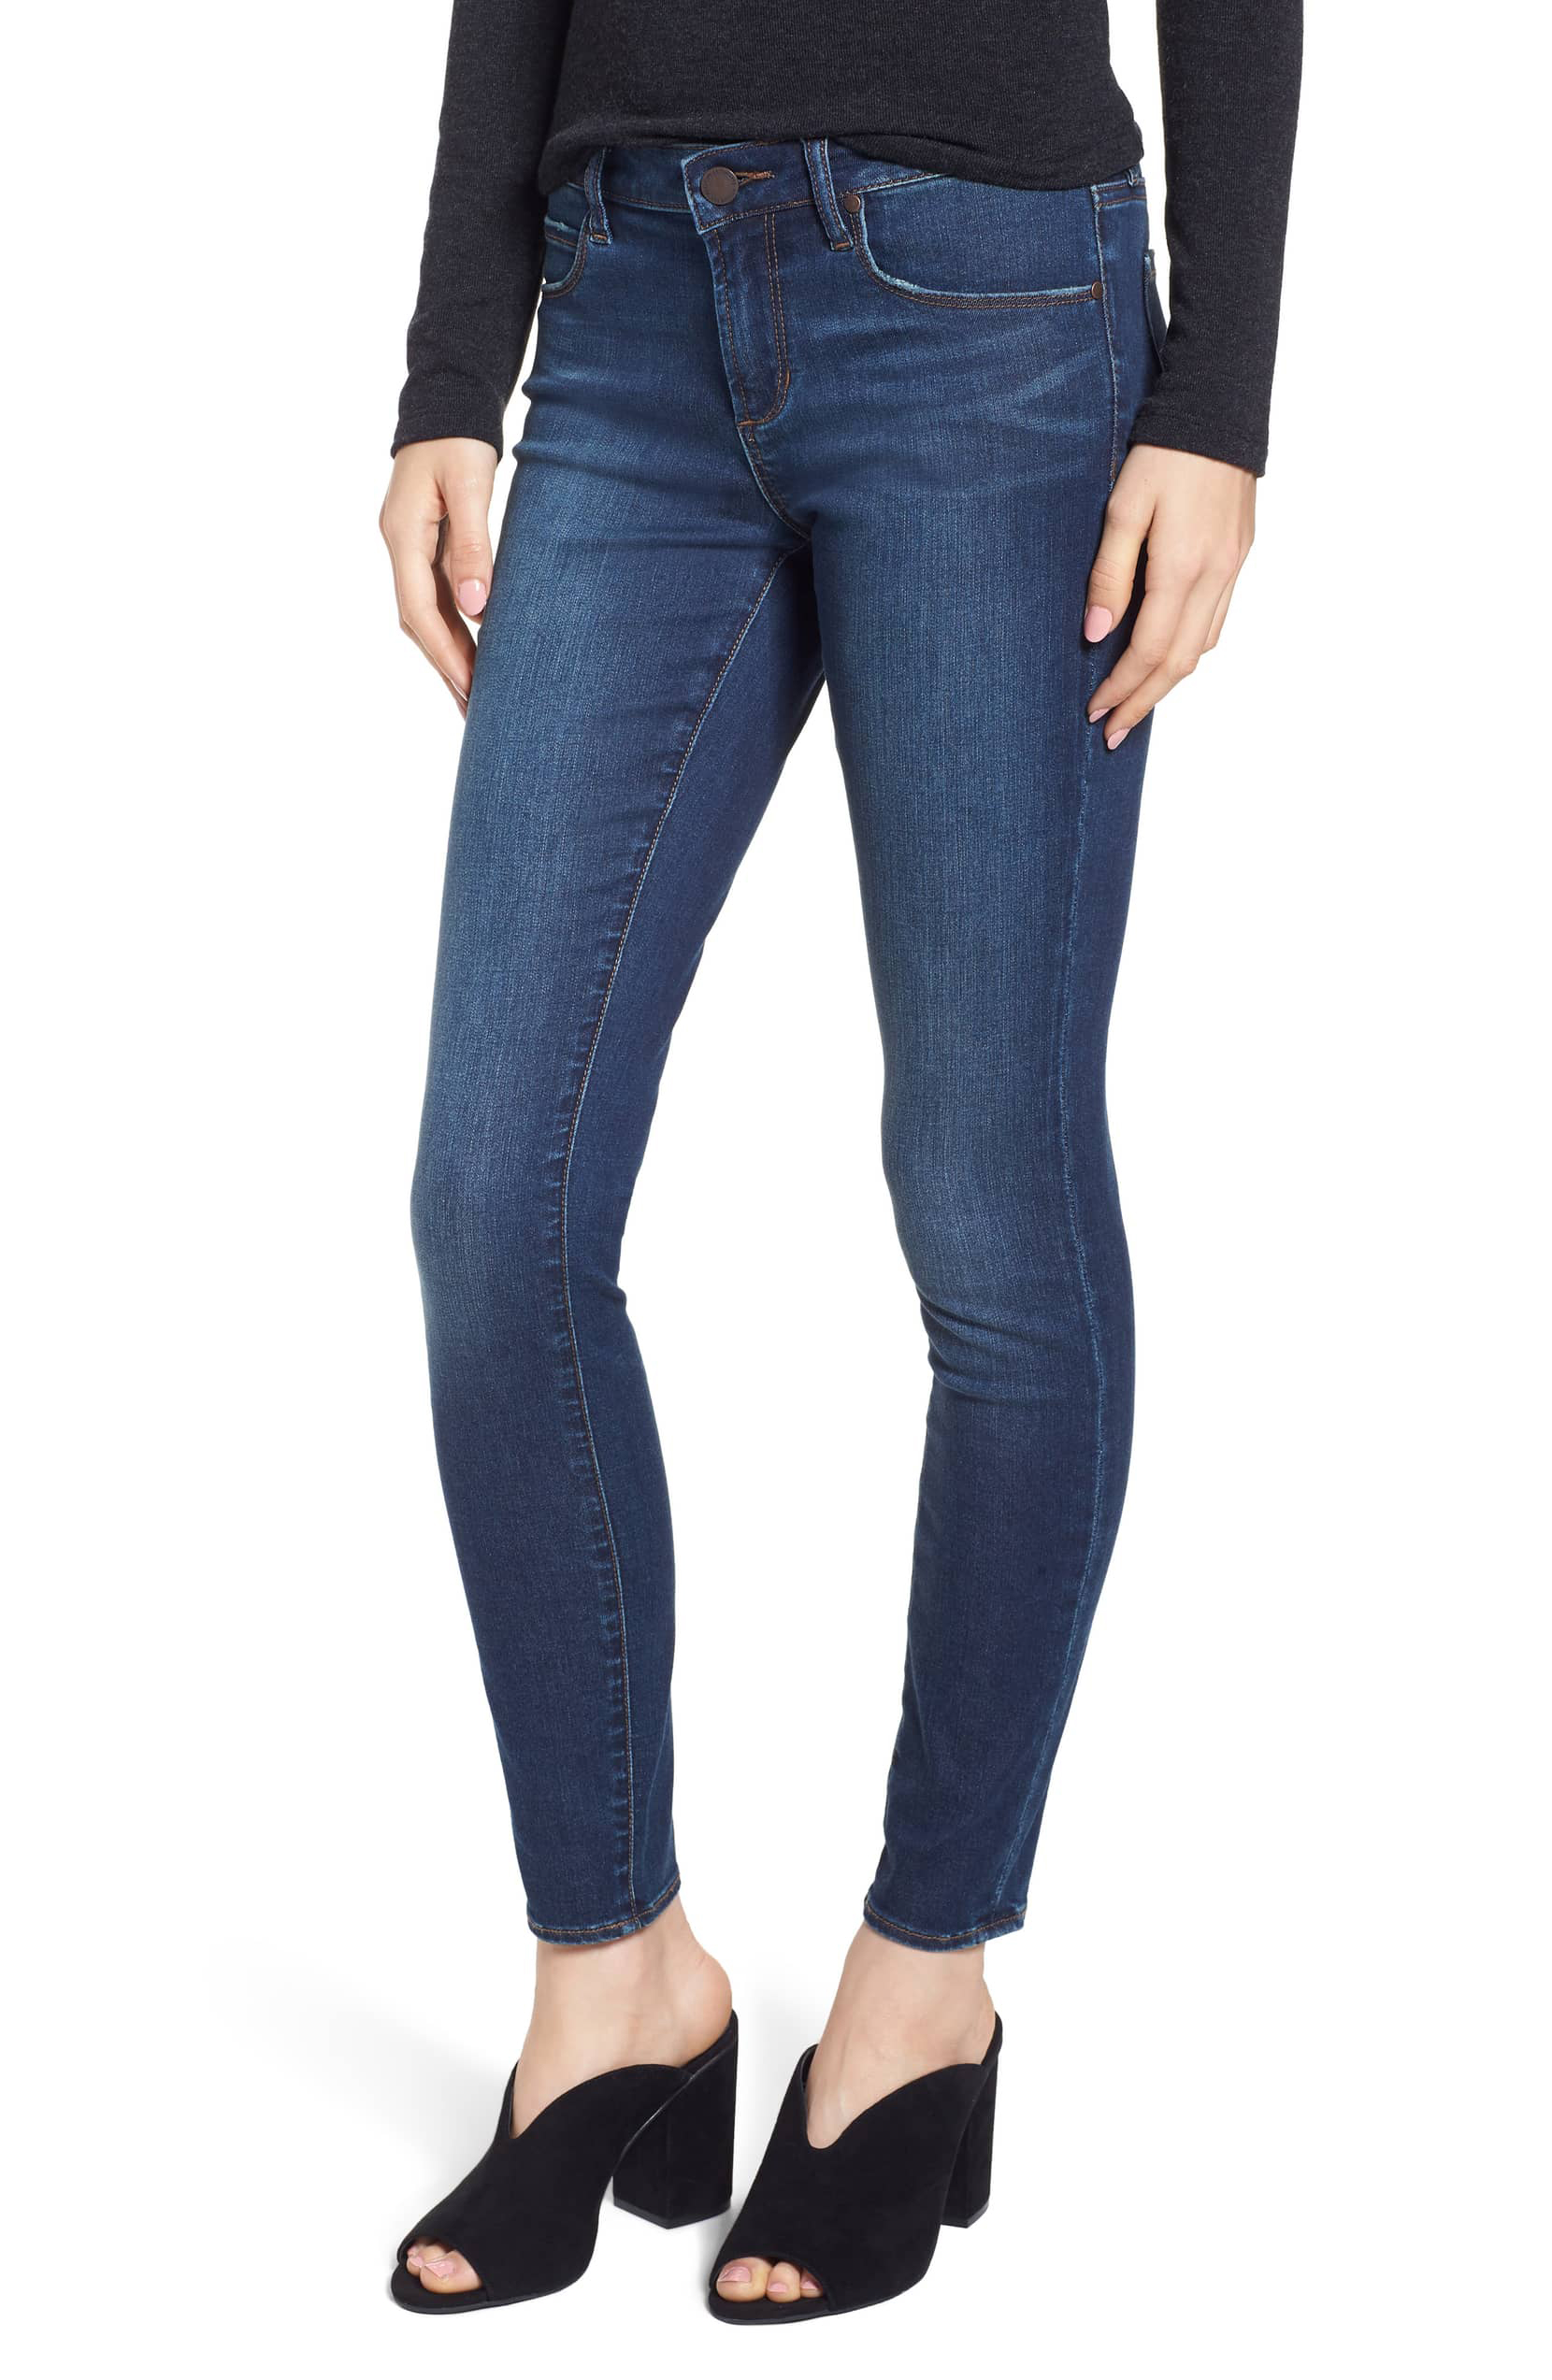 articles of society sarah skinny jeans